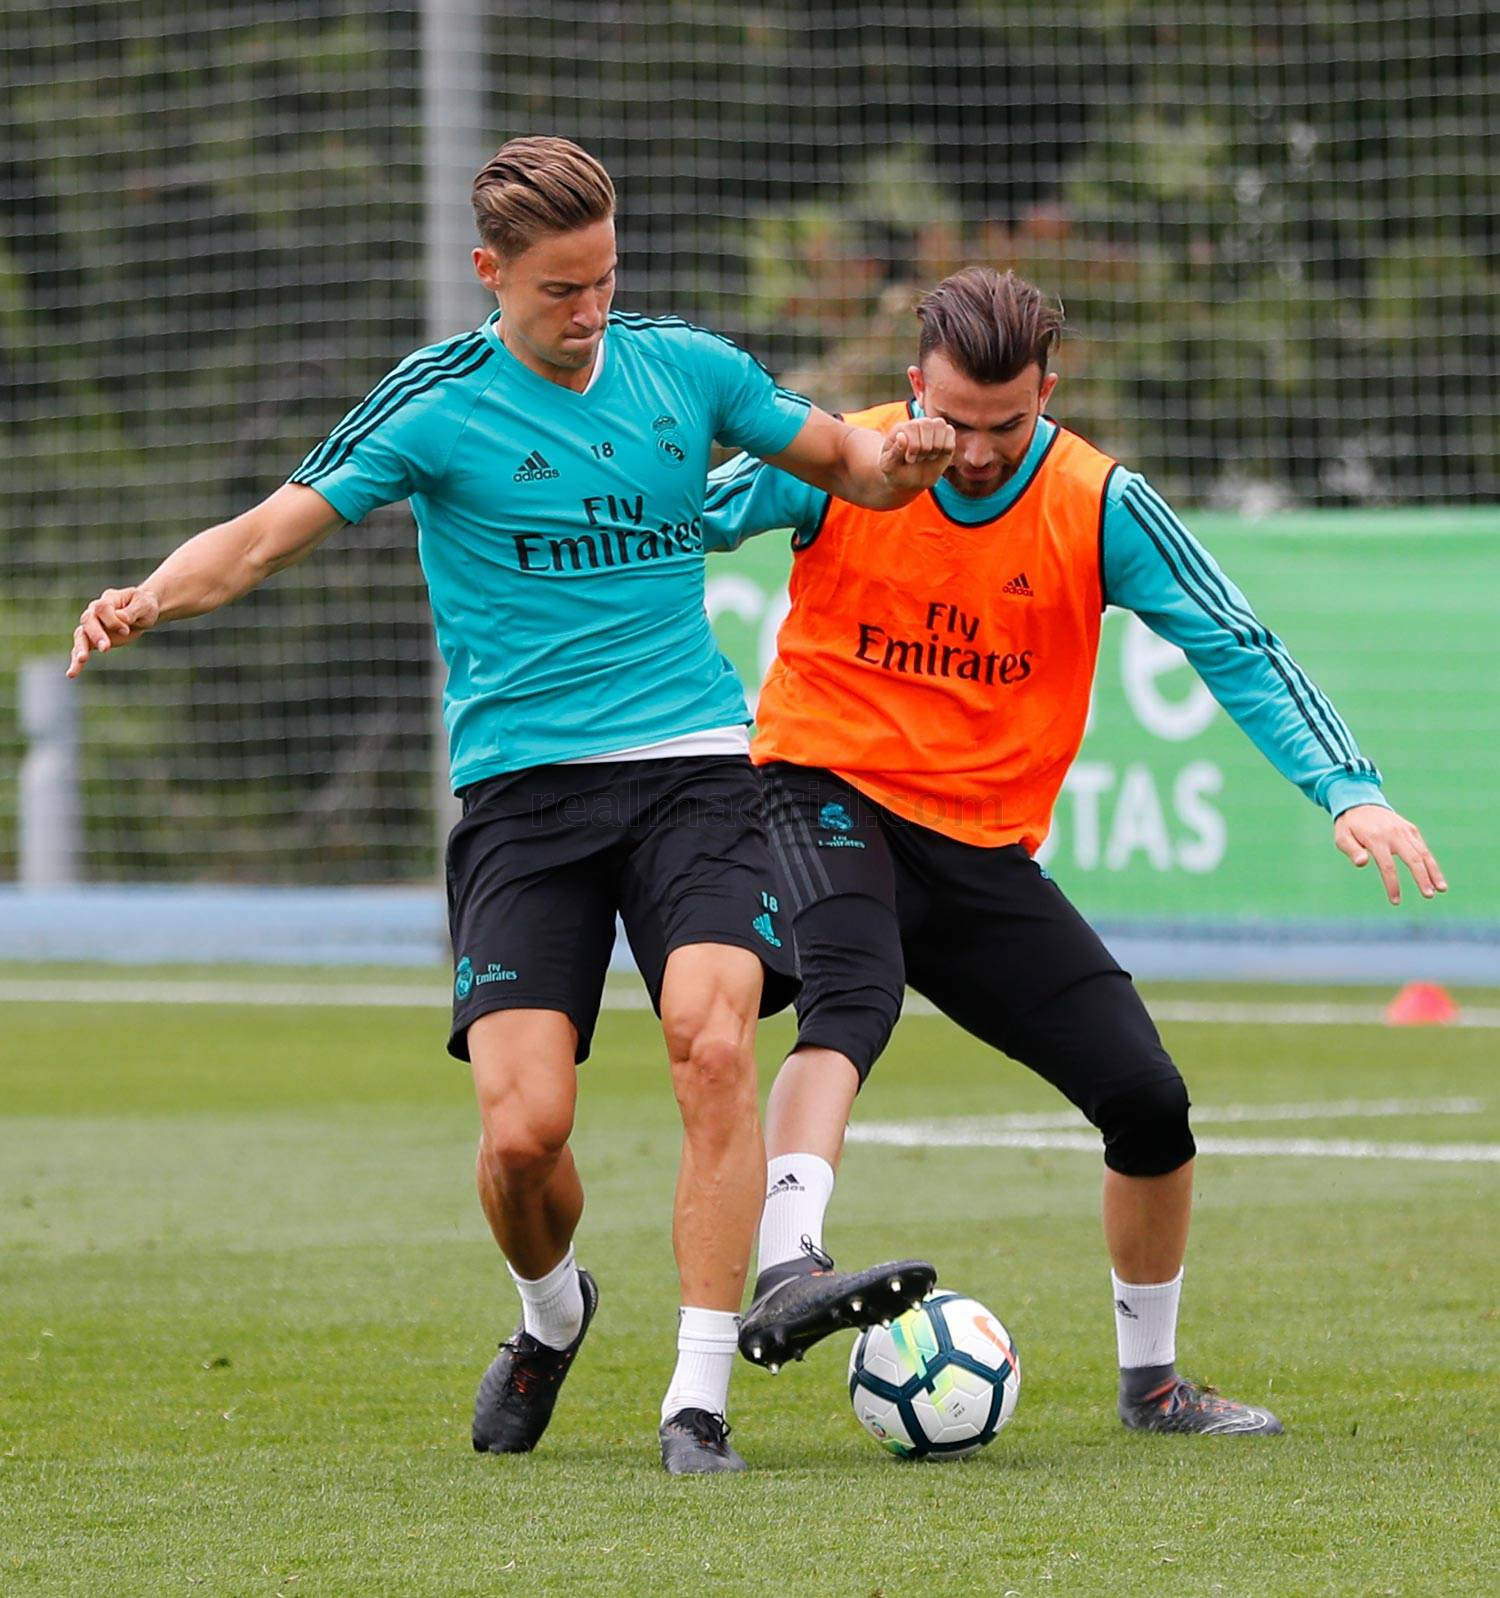 Real Madrid - Entrenamiento del Real Madrid - 07-05-2018